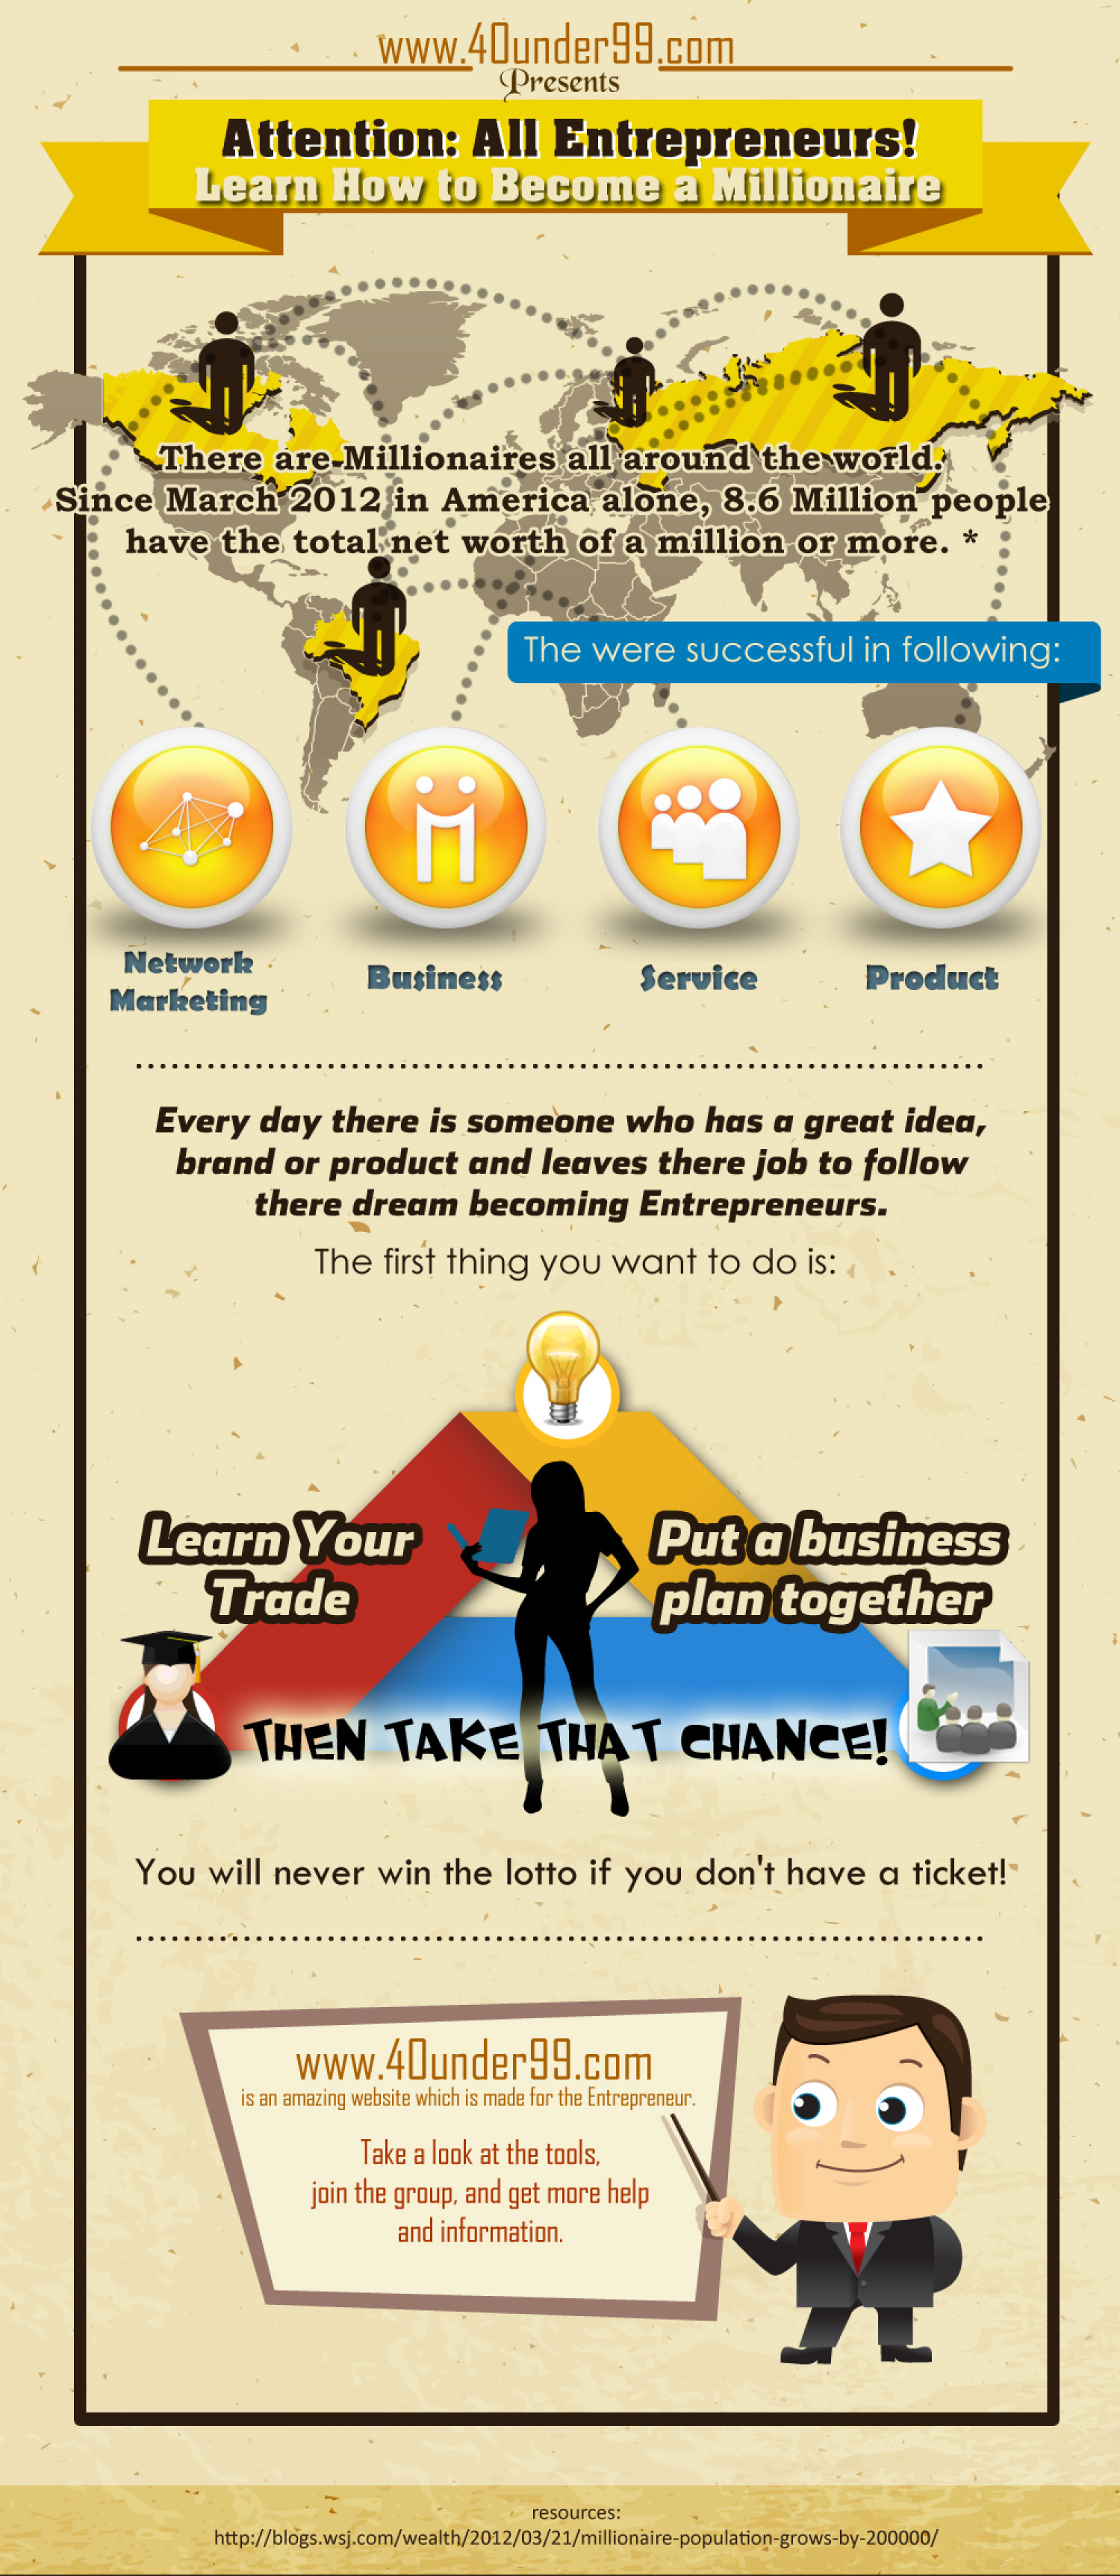 Attention all Entrepreneurs Infographic